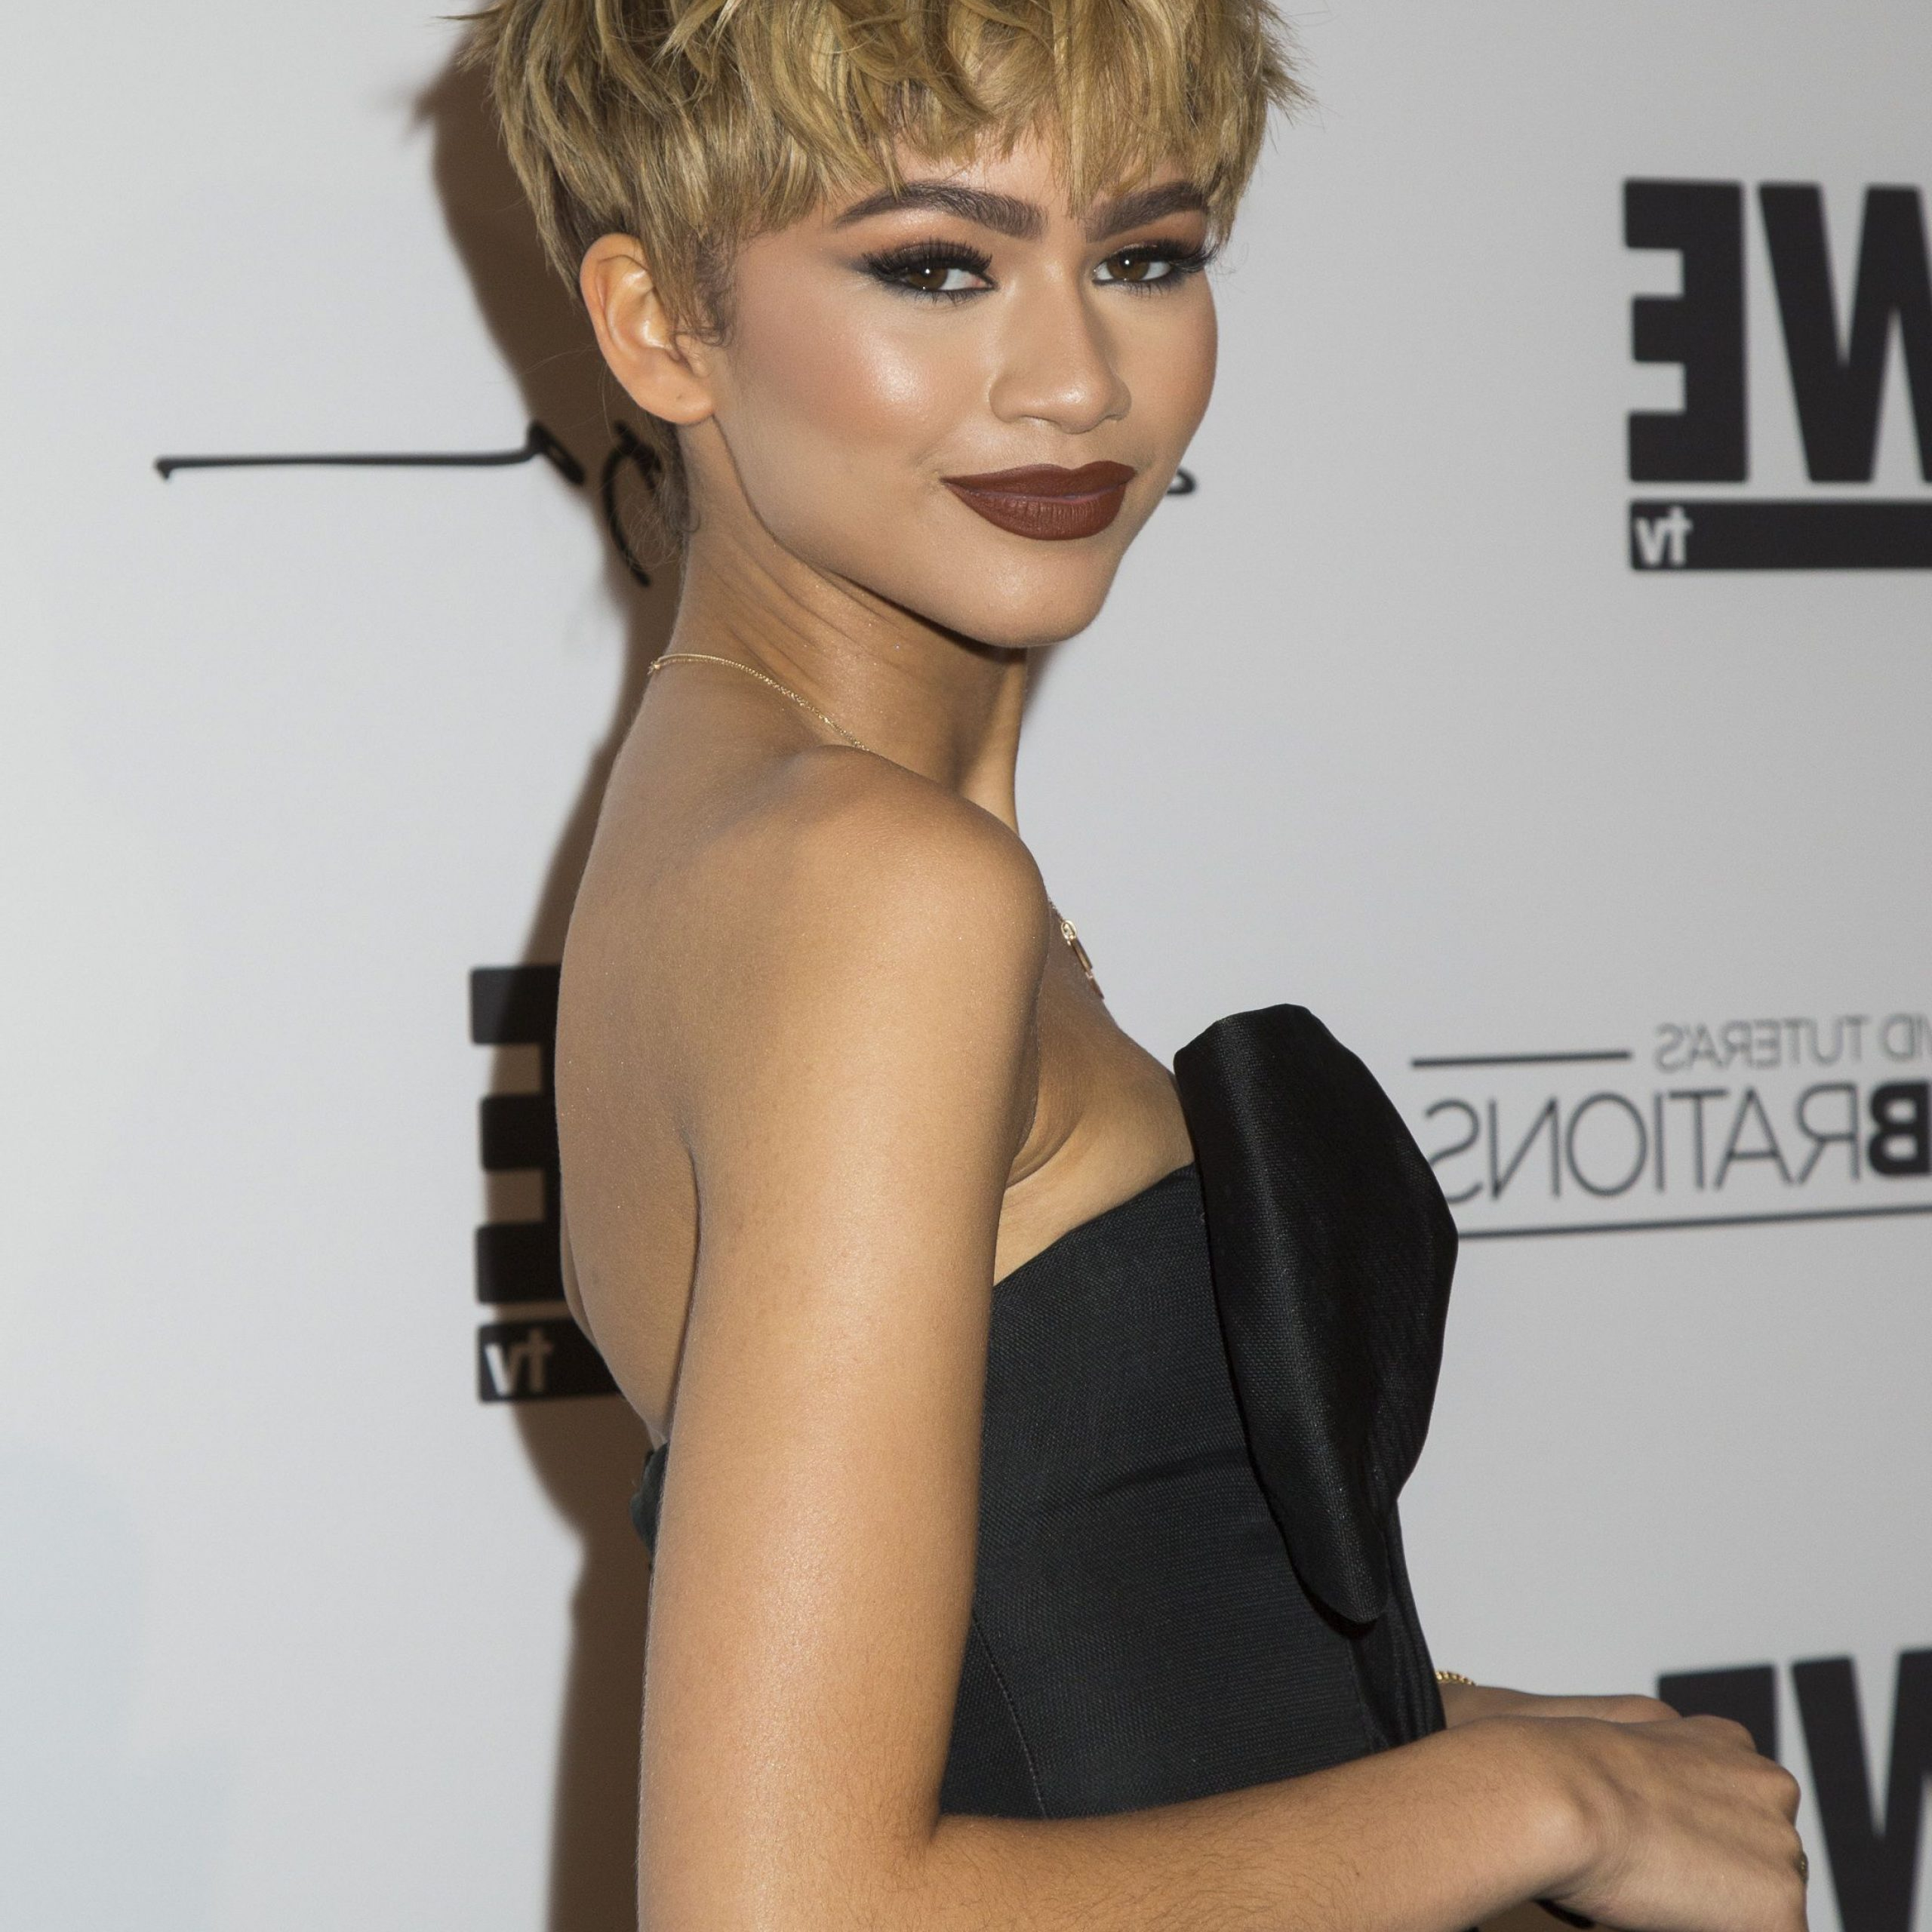 70 Best Pixie Cut Hairstyle Ideas 2019 – Cute Celebrity Pertaining To Messy Highlighted Pixie Haircuts With Long Side Bangs (View 16 of 20)